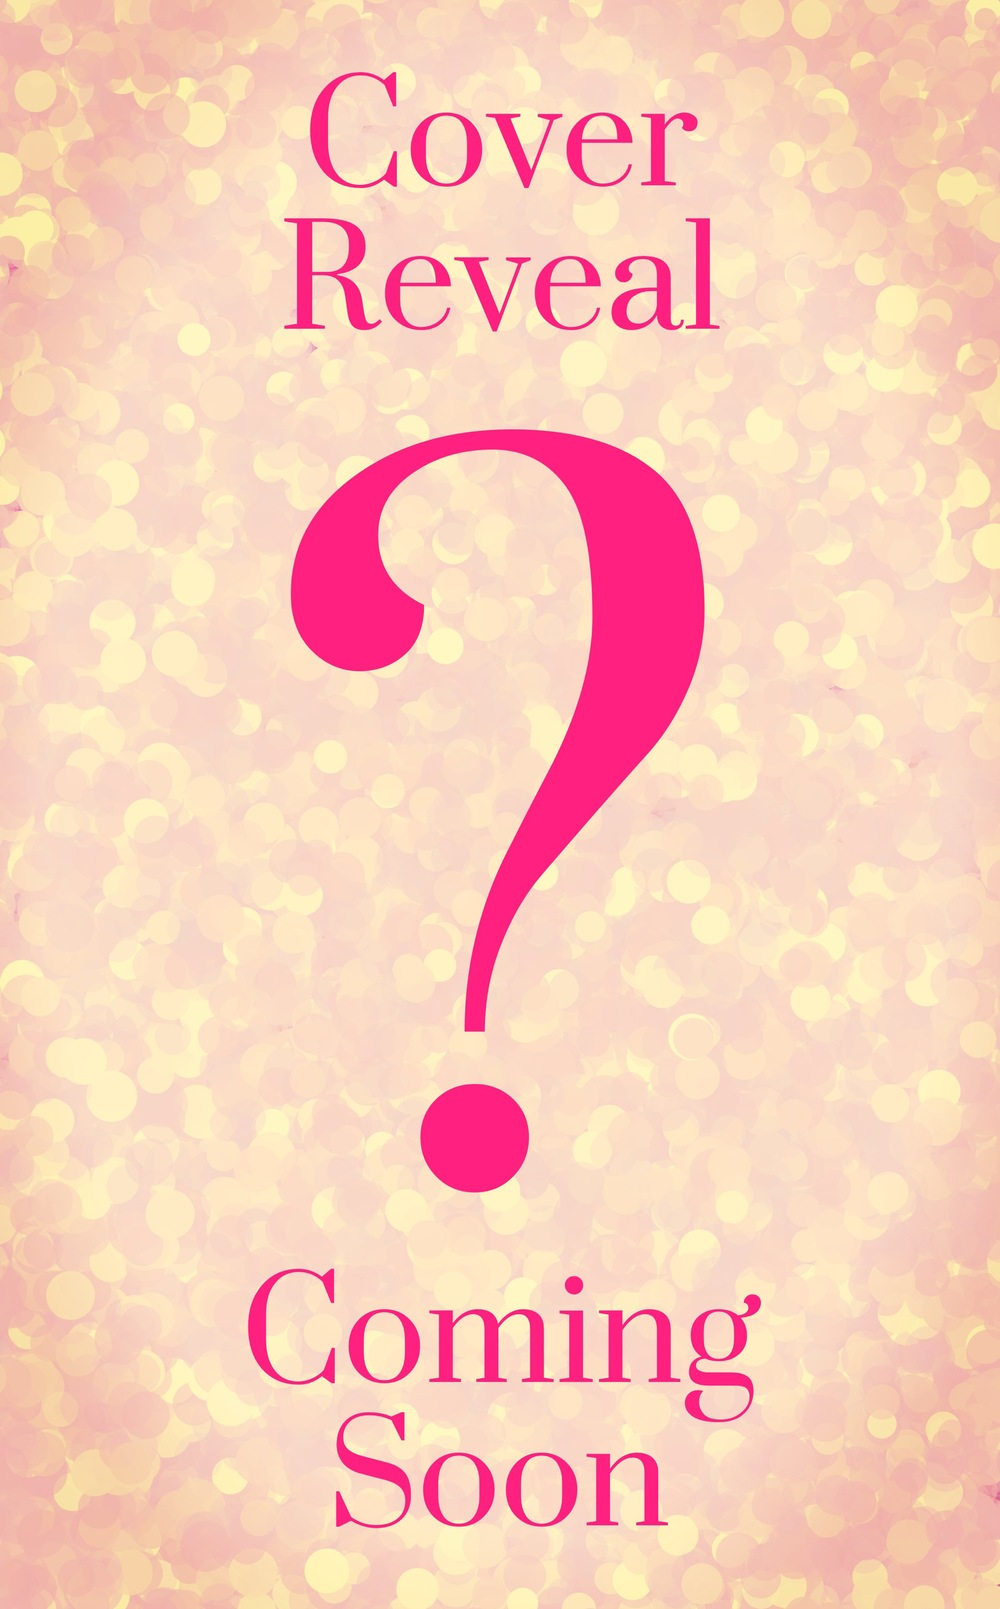 Cover Reveal - Savannah Page